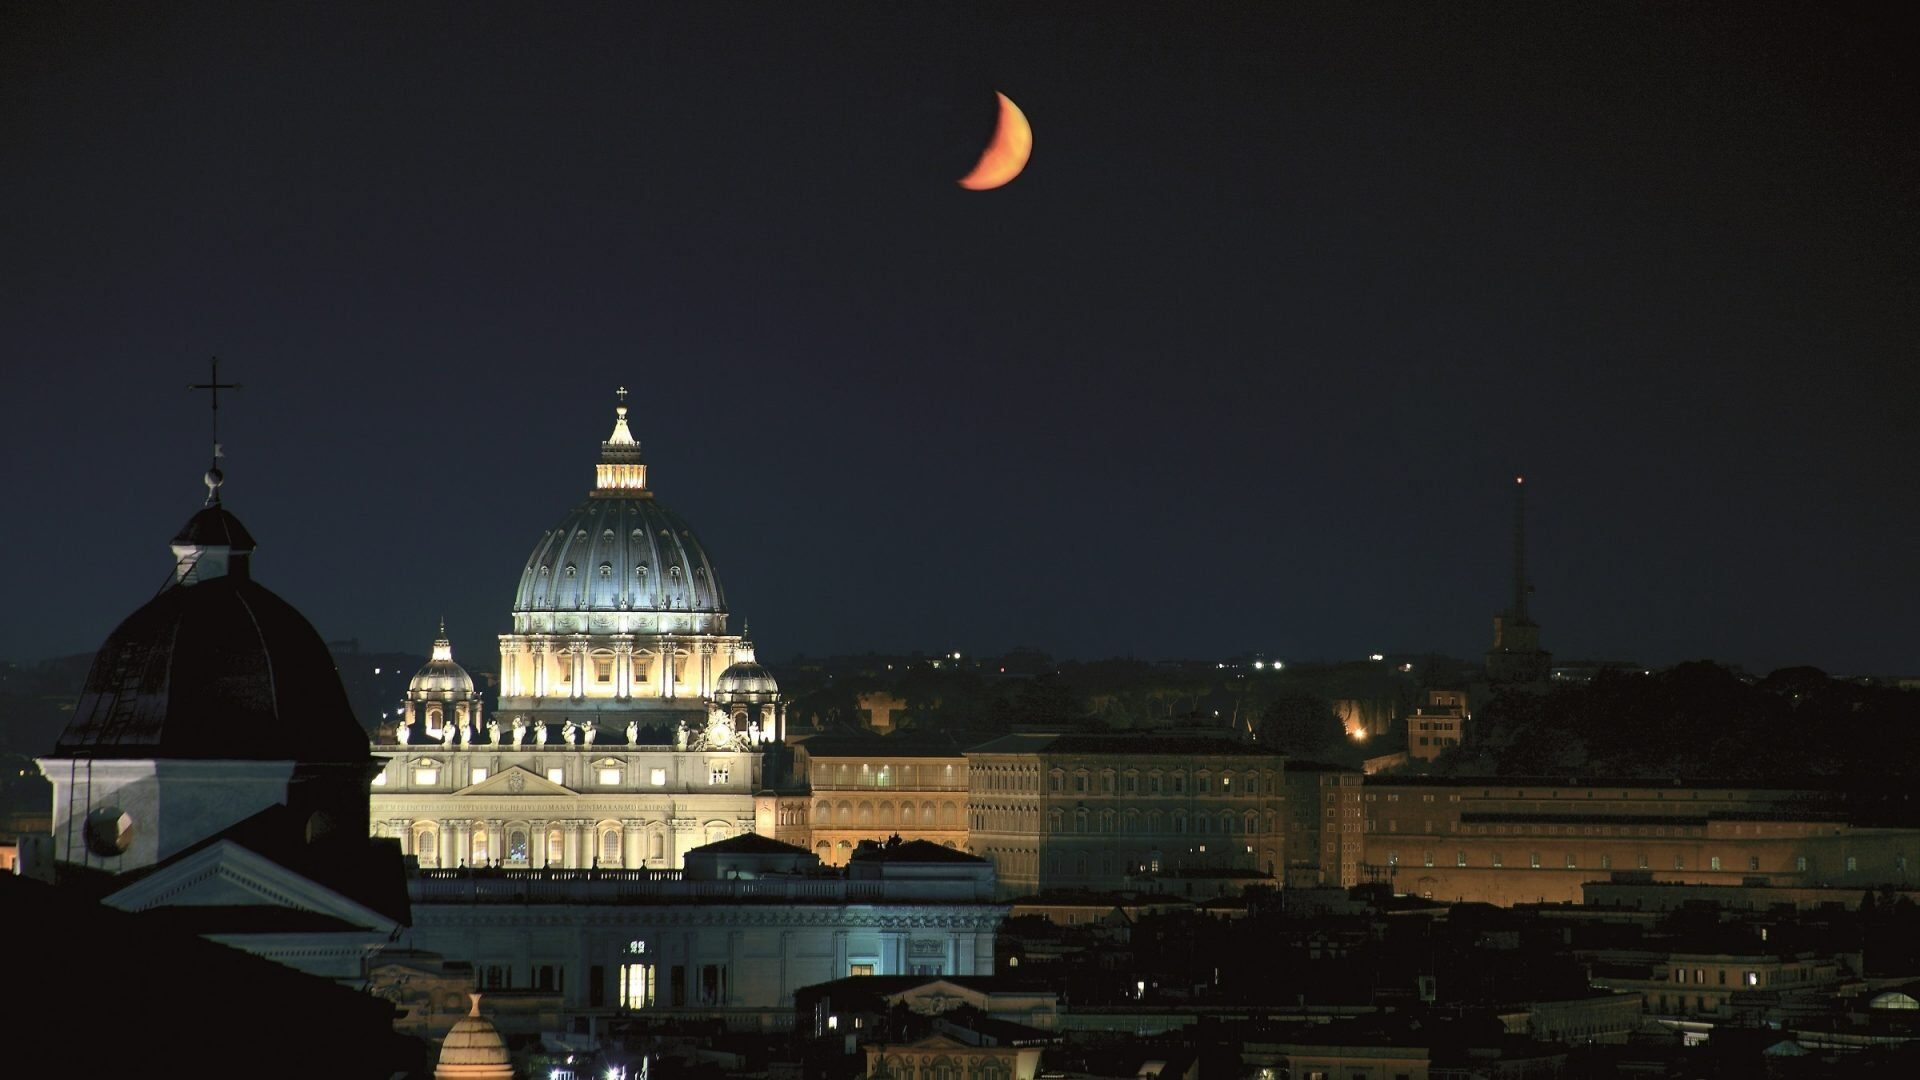 The view of Rome at night with St Peter's Basilica in the background